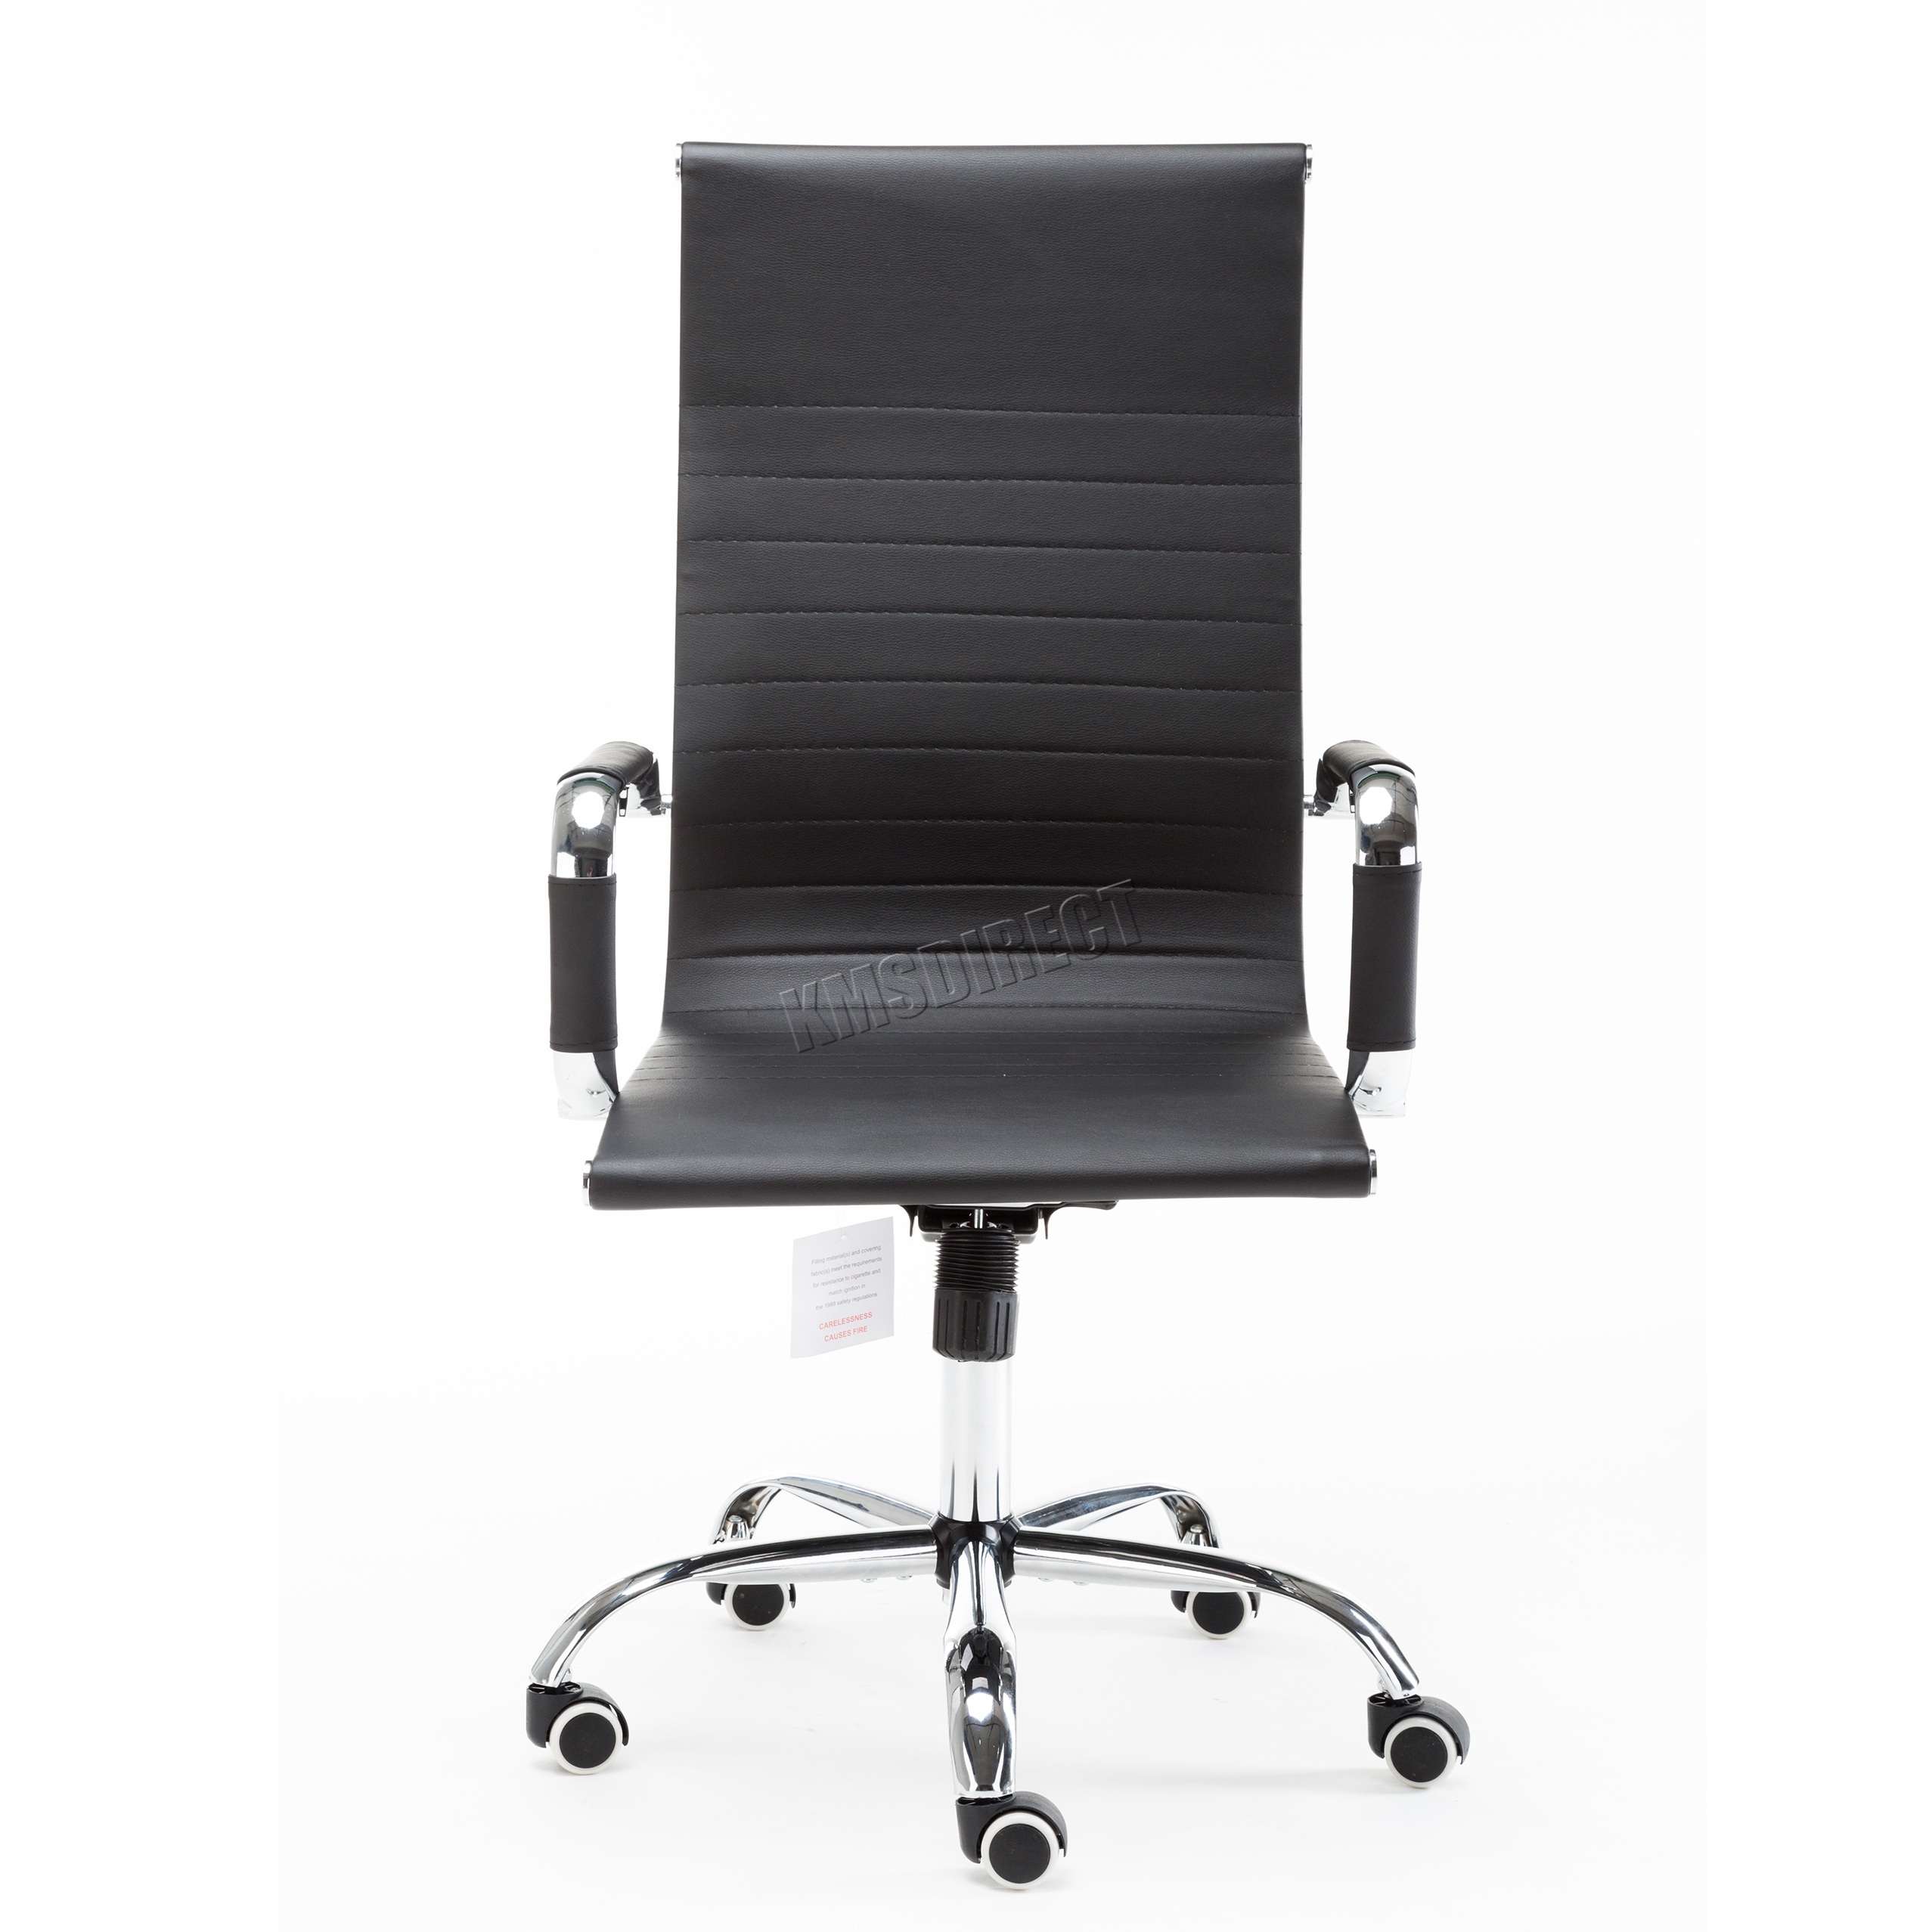 westwood home computer office desk chair faux leather pu swivel high rh ebay co uk home office desk chair ideas home office desk chairs review